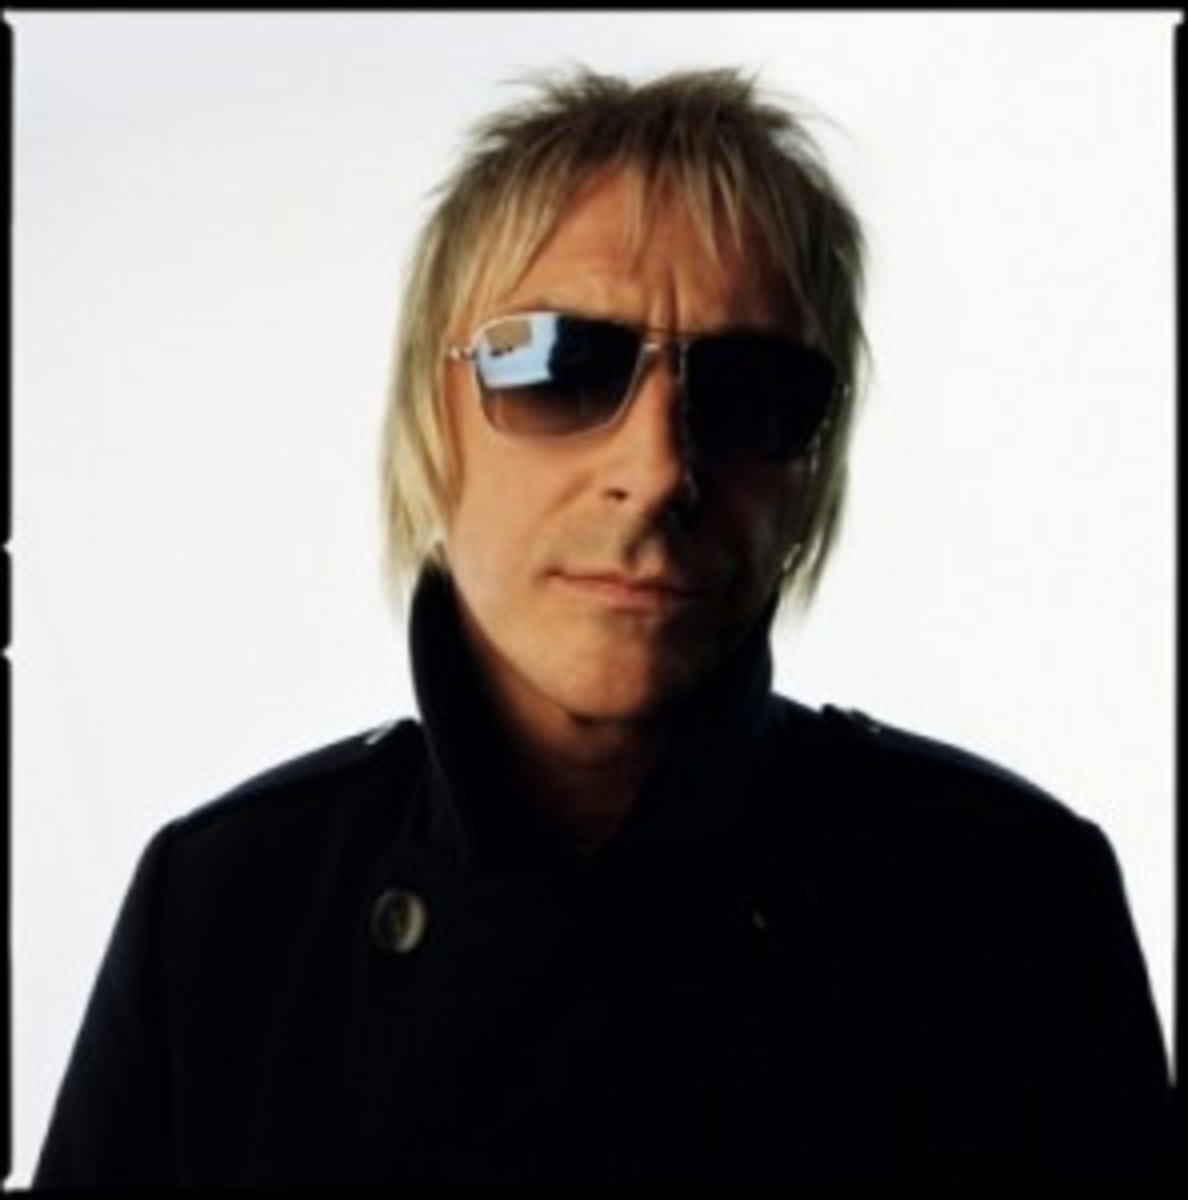 Paul Weller played two well-received shows in New York City over the weekend.